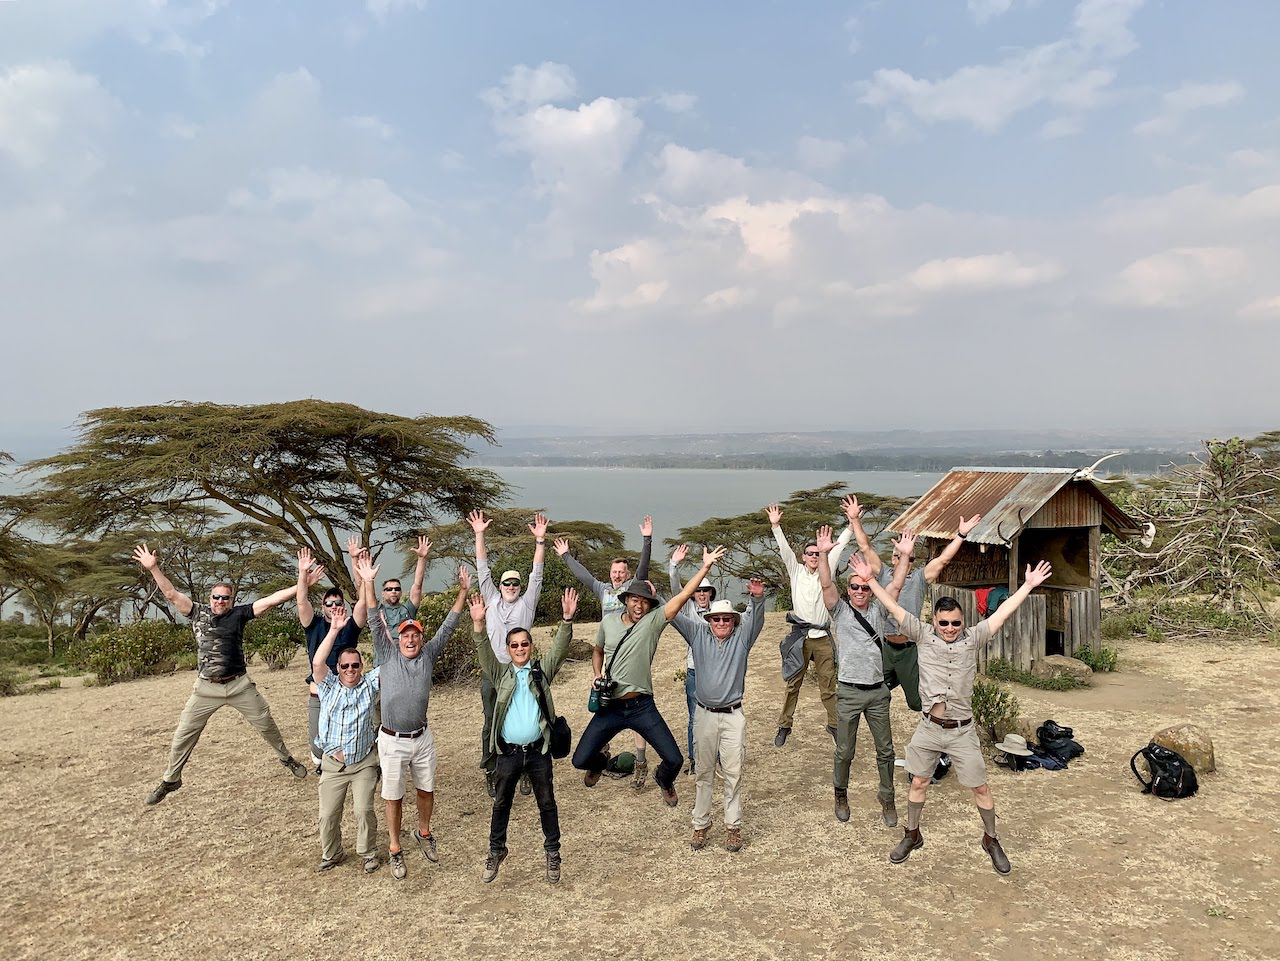 Out Adventures gay travellers jump for joy in unison over Lake Nakuru.